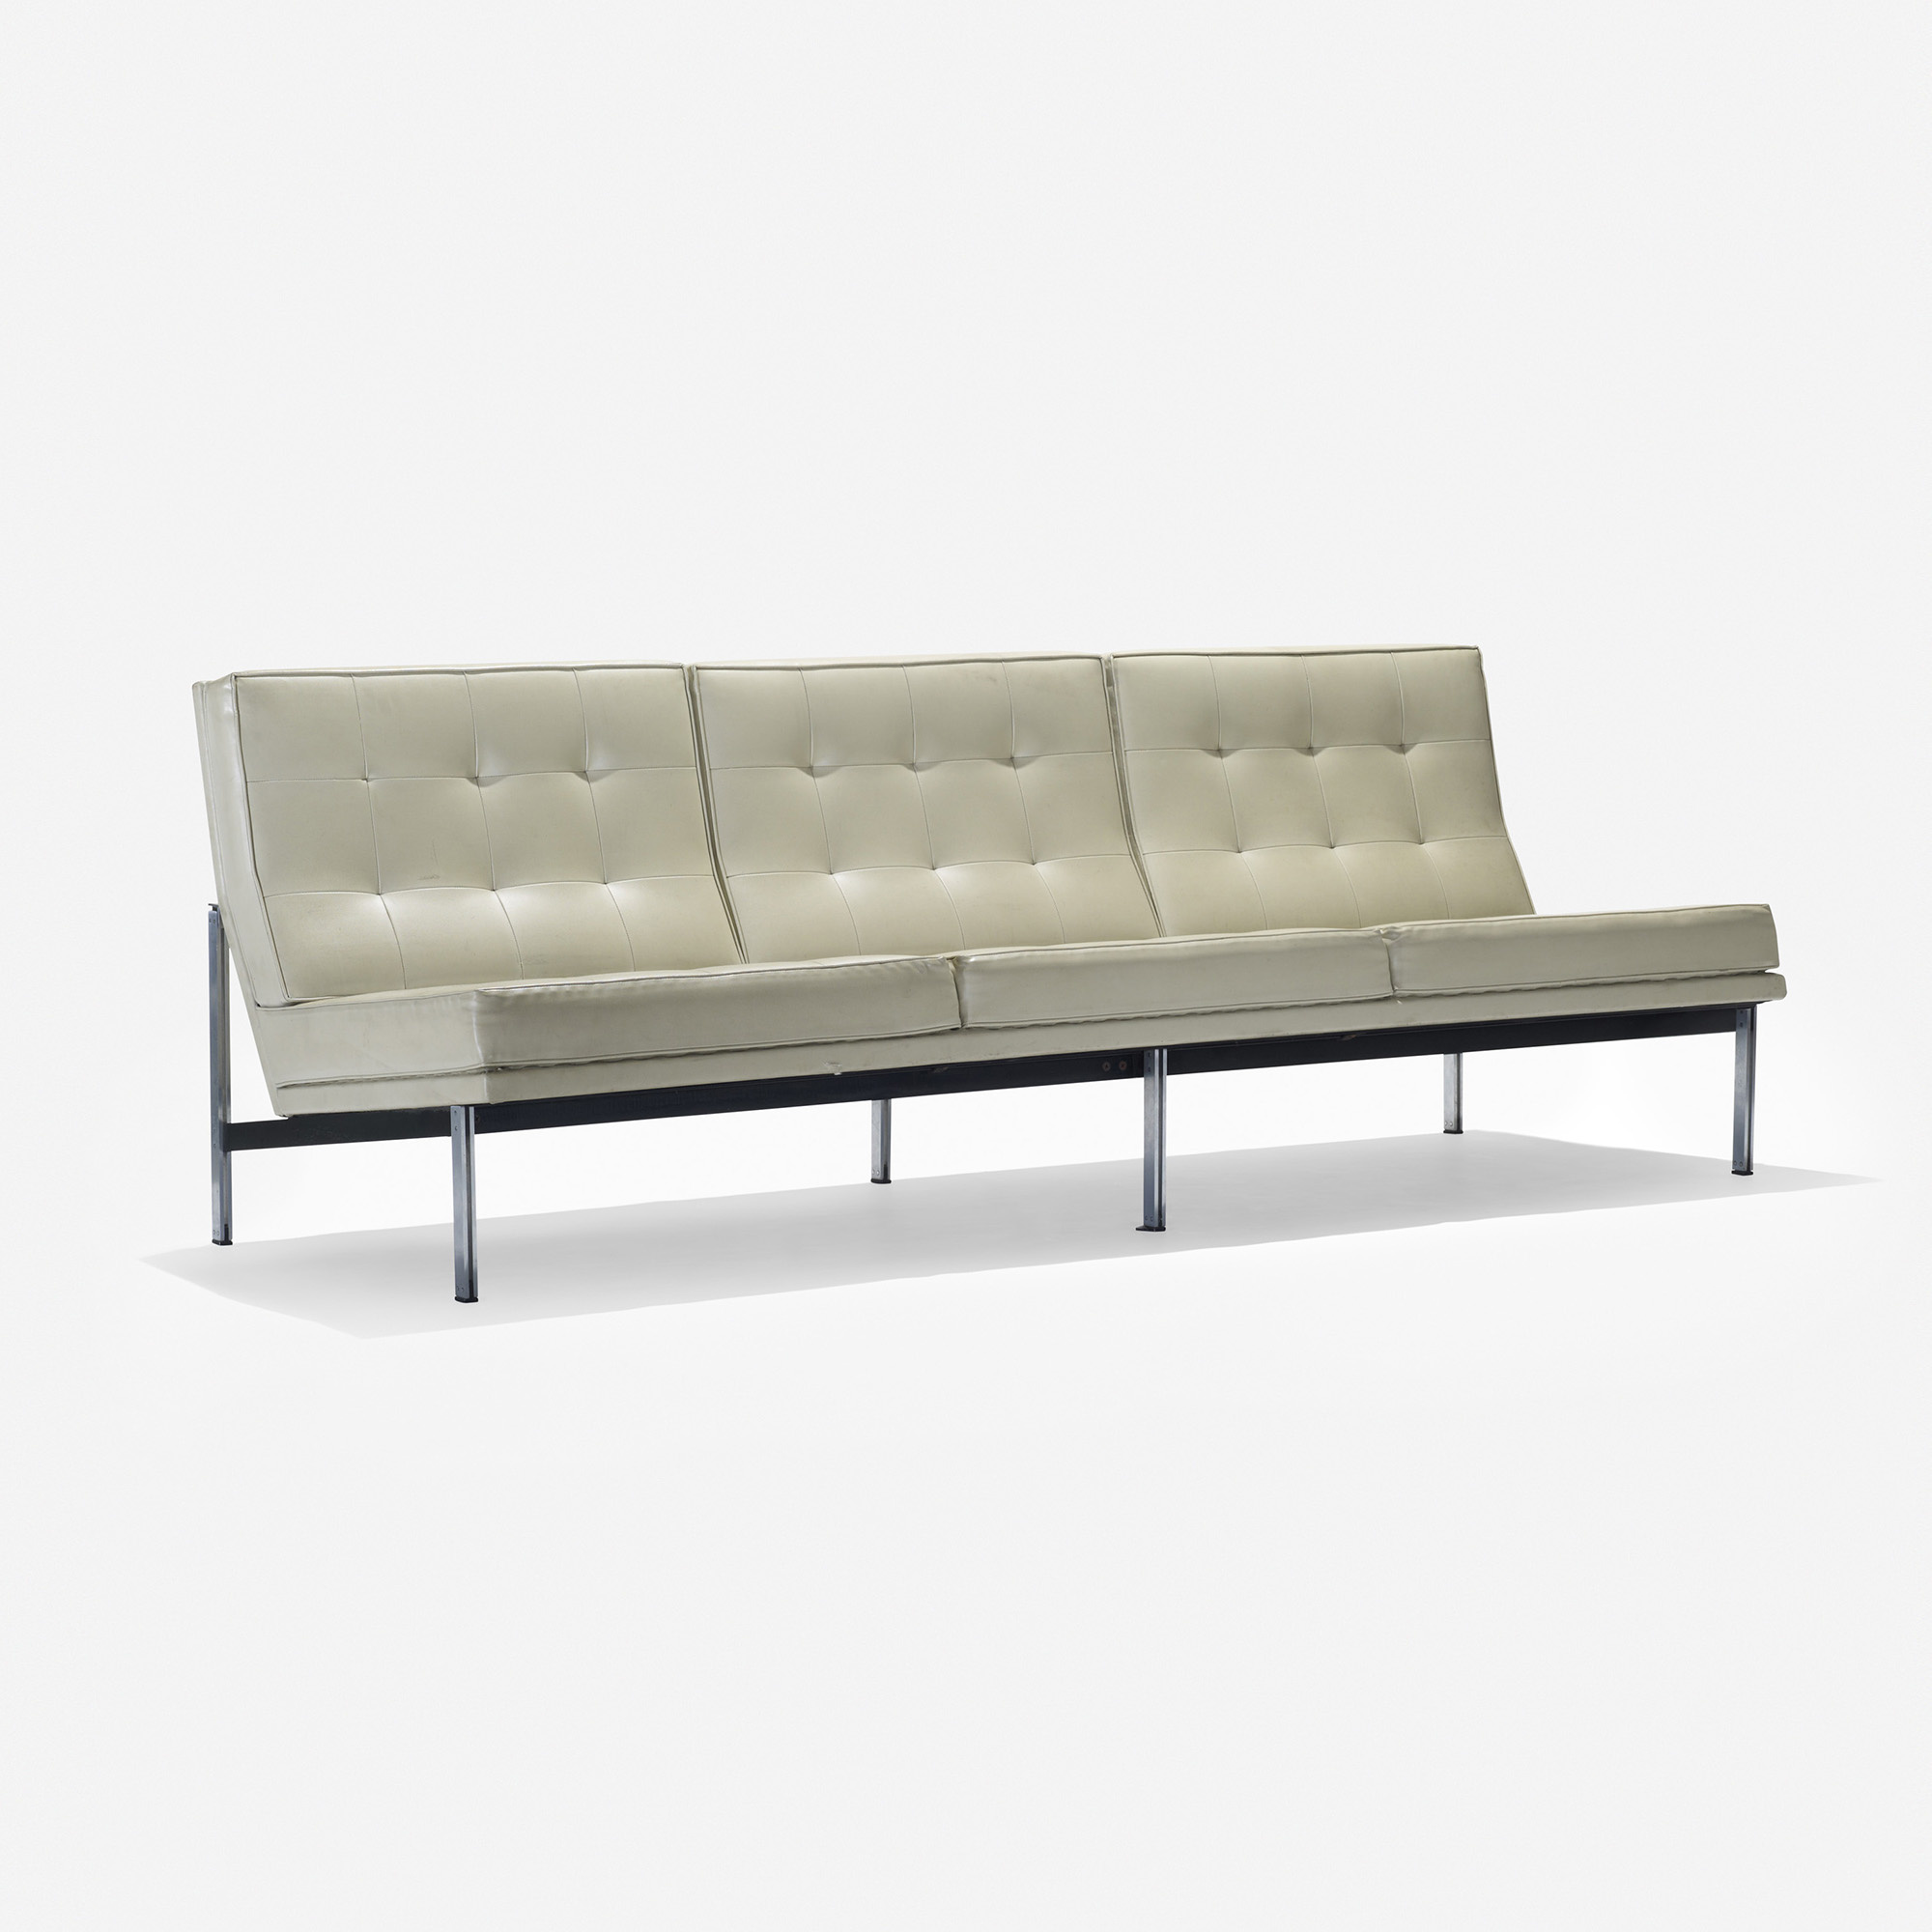 Knoll Sofa 111 Florence Knoll Parallel Bar Sofa Modern Design 18 October